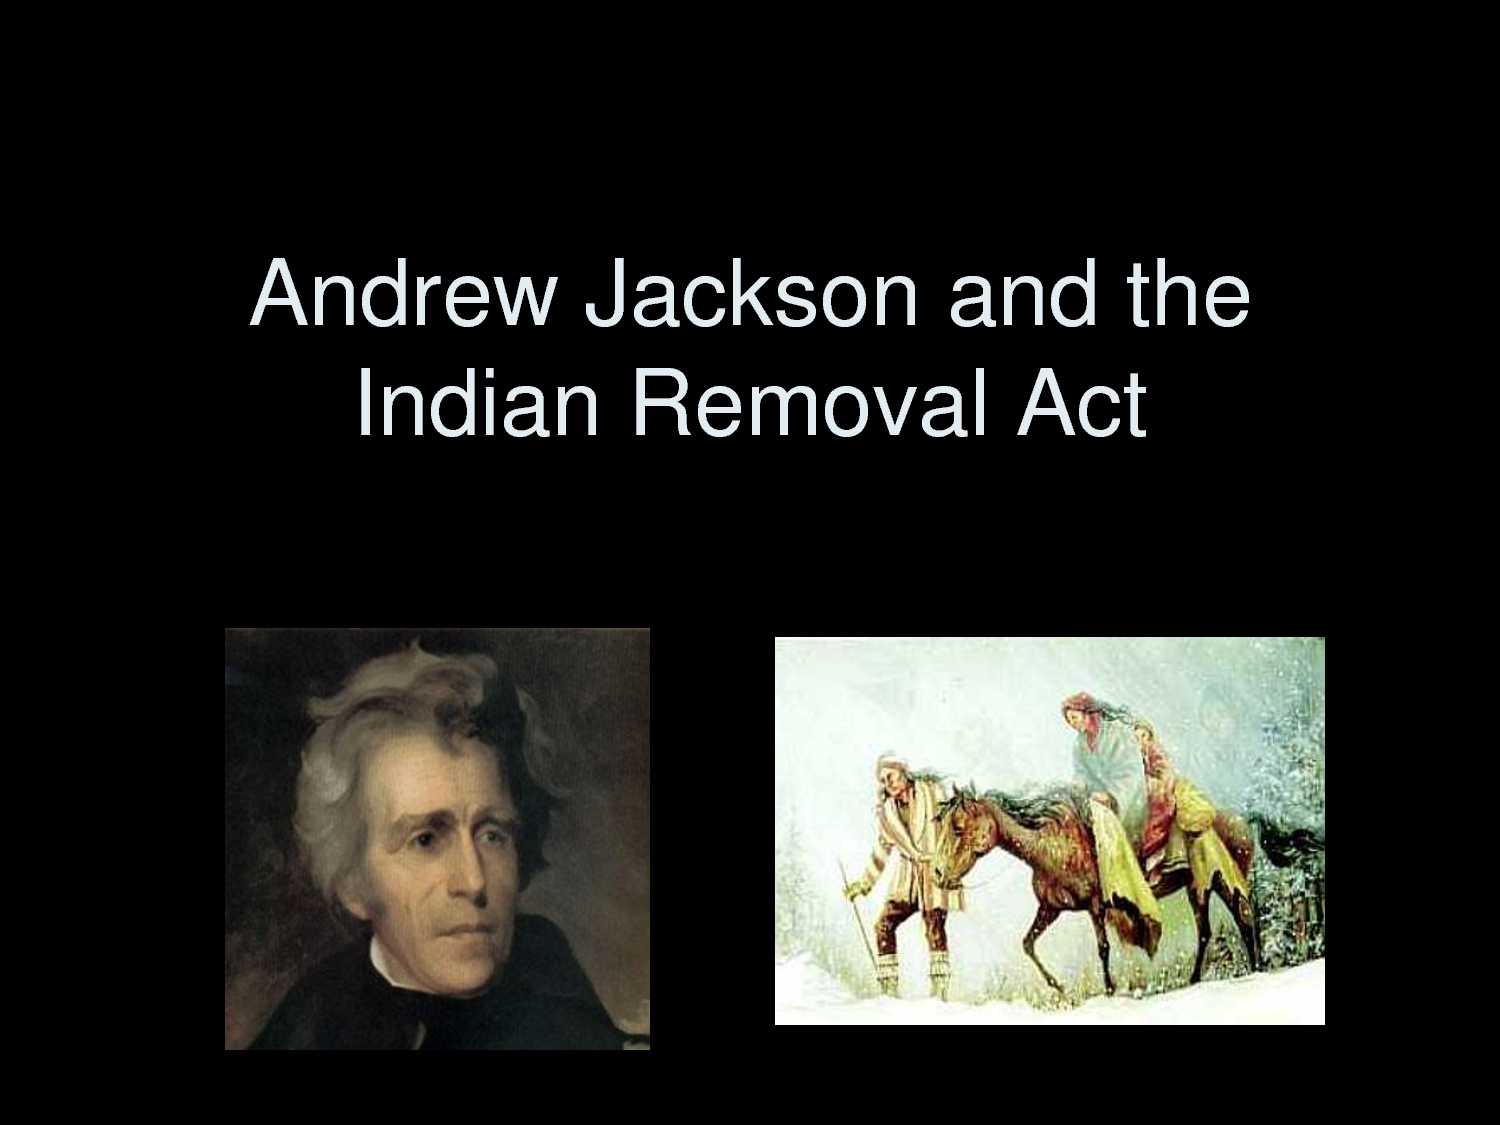 andrew jackson indian removal policy Andrew jackson's indian removal policy was a terrible act in 1830 andrew jackson passed a law that would change native american lives forever this act was the worst act removing the people that had been here way much longer than the english settlers andrew jackson's indian removal policy was informed by his belief.